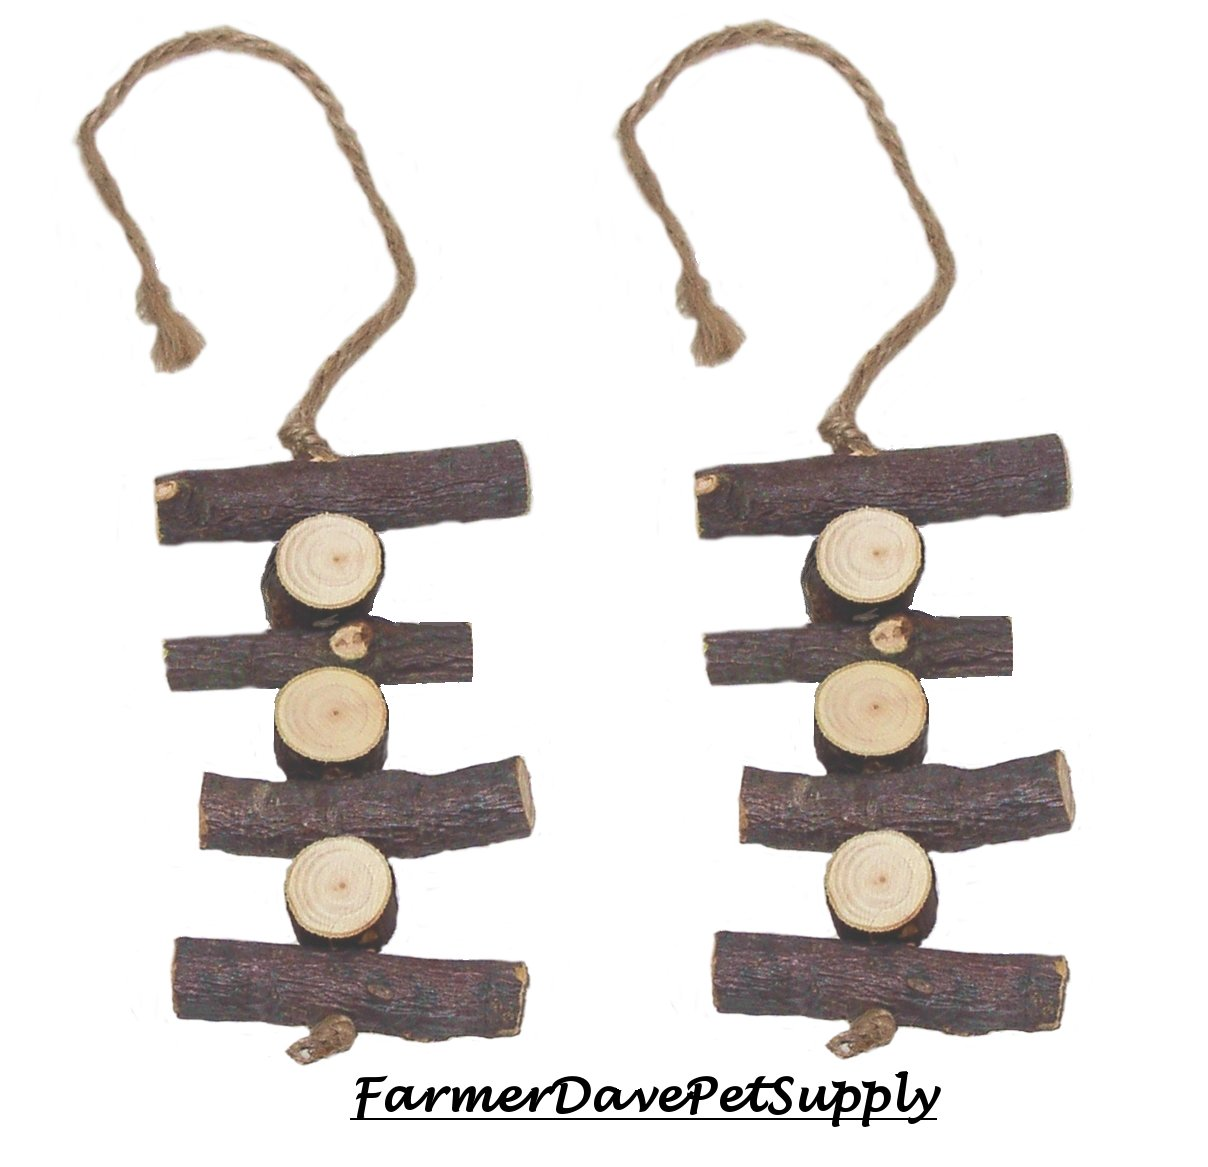 FarmerDavePetSupply Organic Apple Chew Toy for Small Animals - Dual Pack